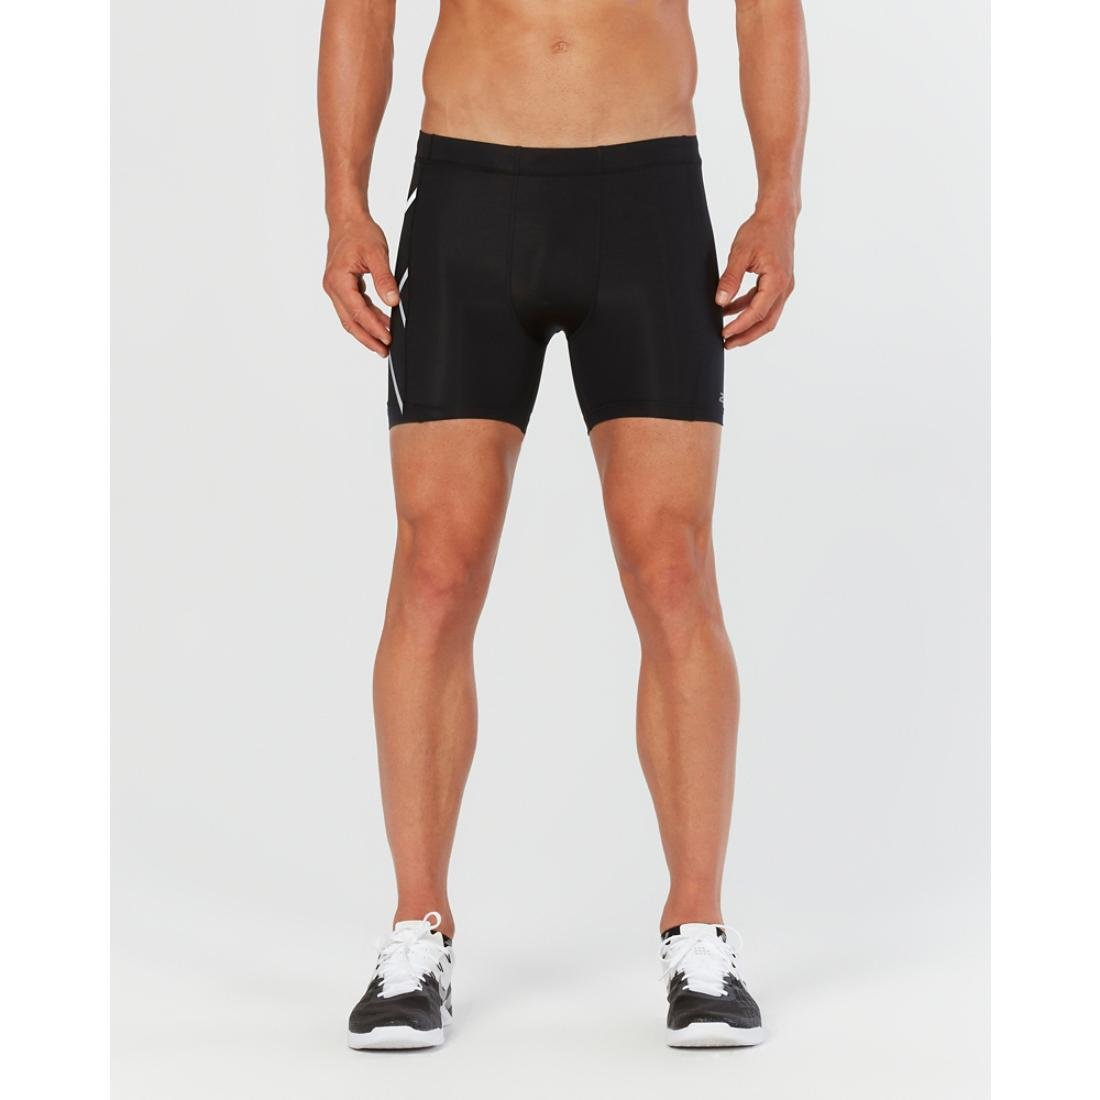 2XU Herren Ma4506 Compression 1 2 Shorts